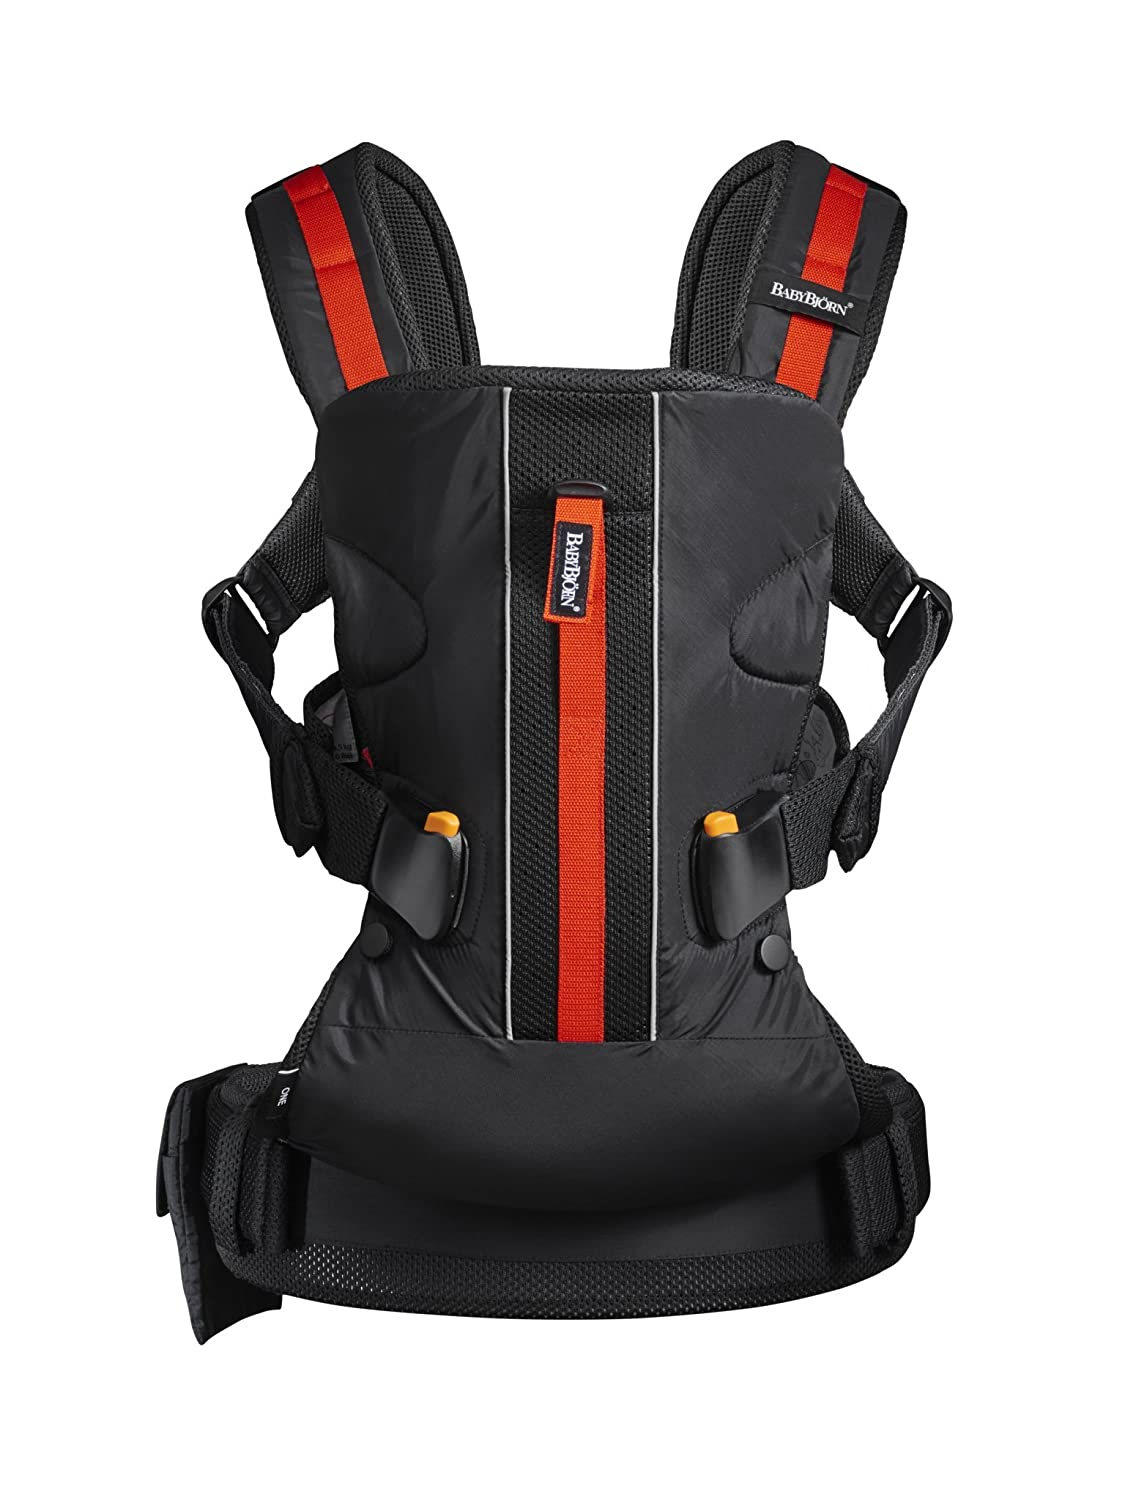 BABYBJÖRN Baby Carrier One Outdoors, Black BABYBJORN 094068